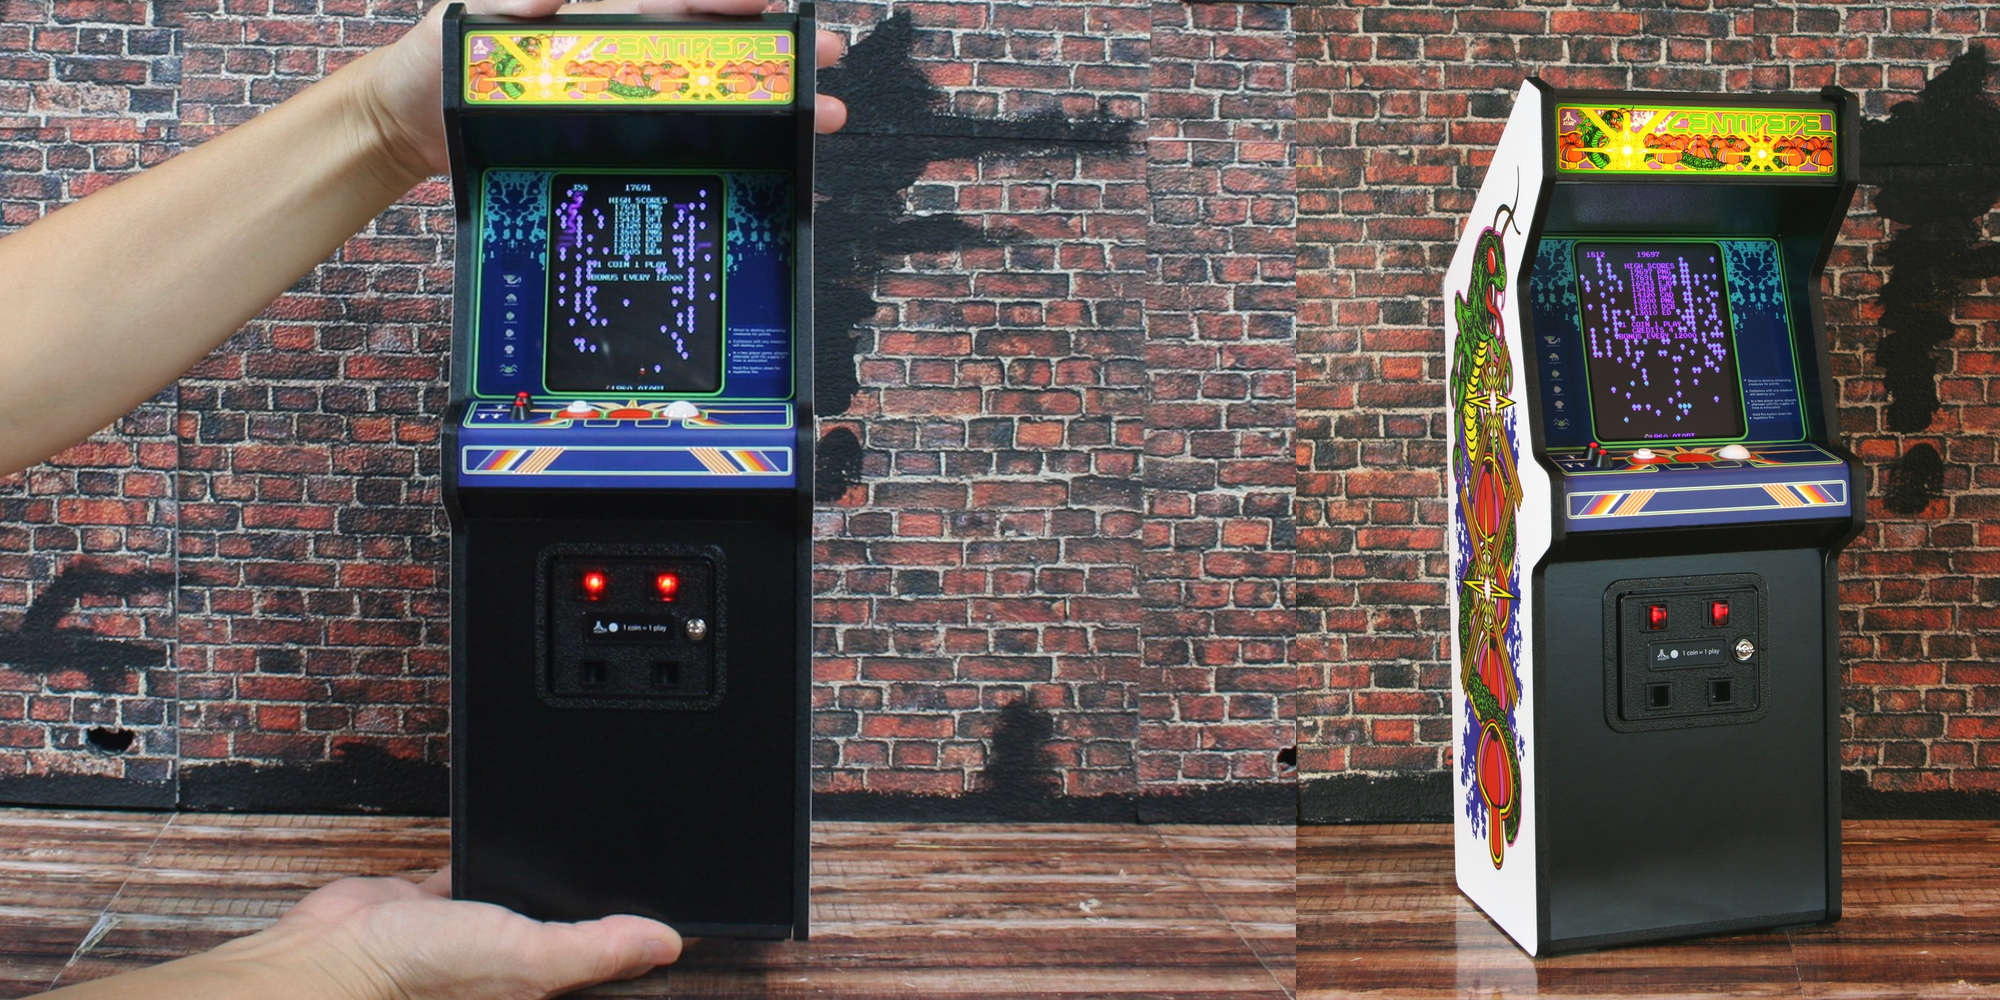 RepliCade's Centipede Miniature Playable Arcade is yours for $99 shipped today (Reg. $160)